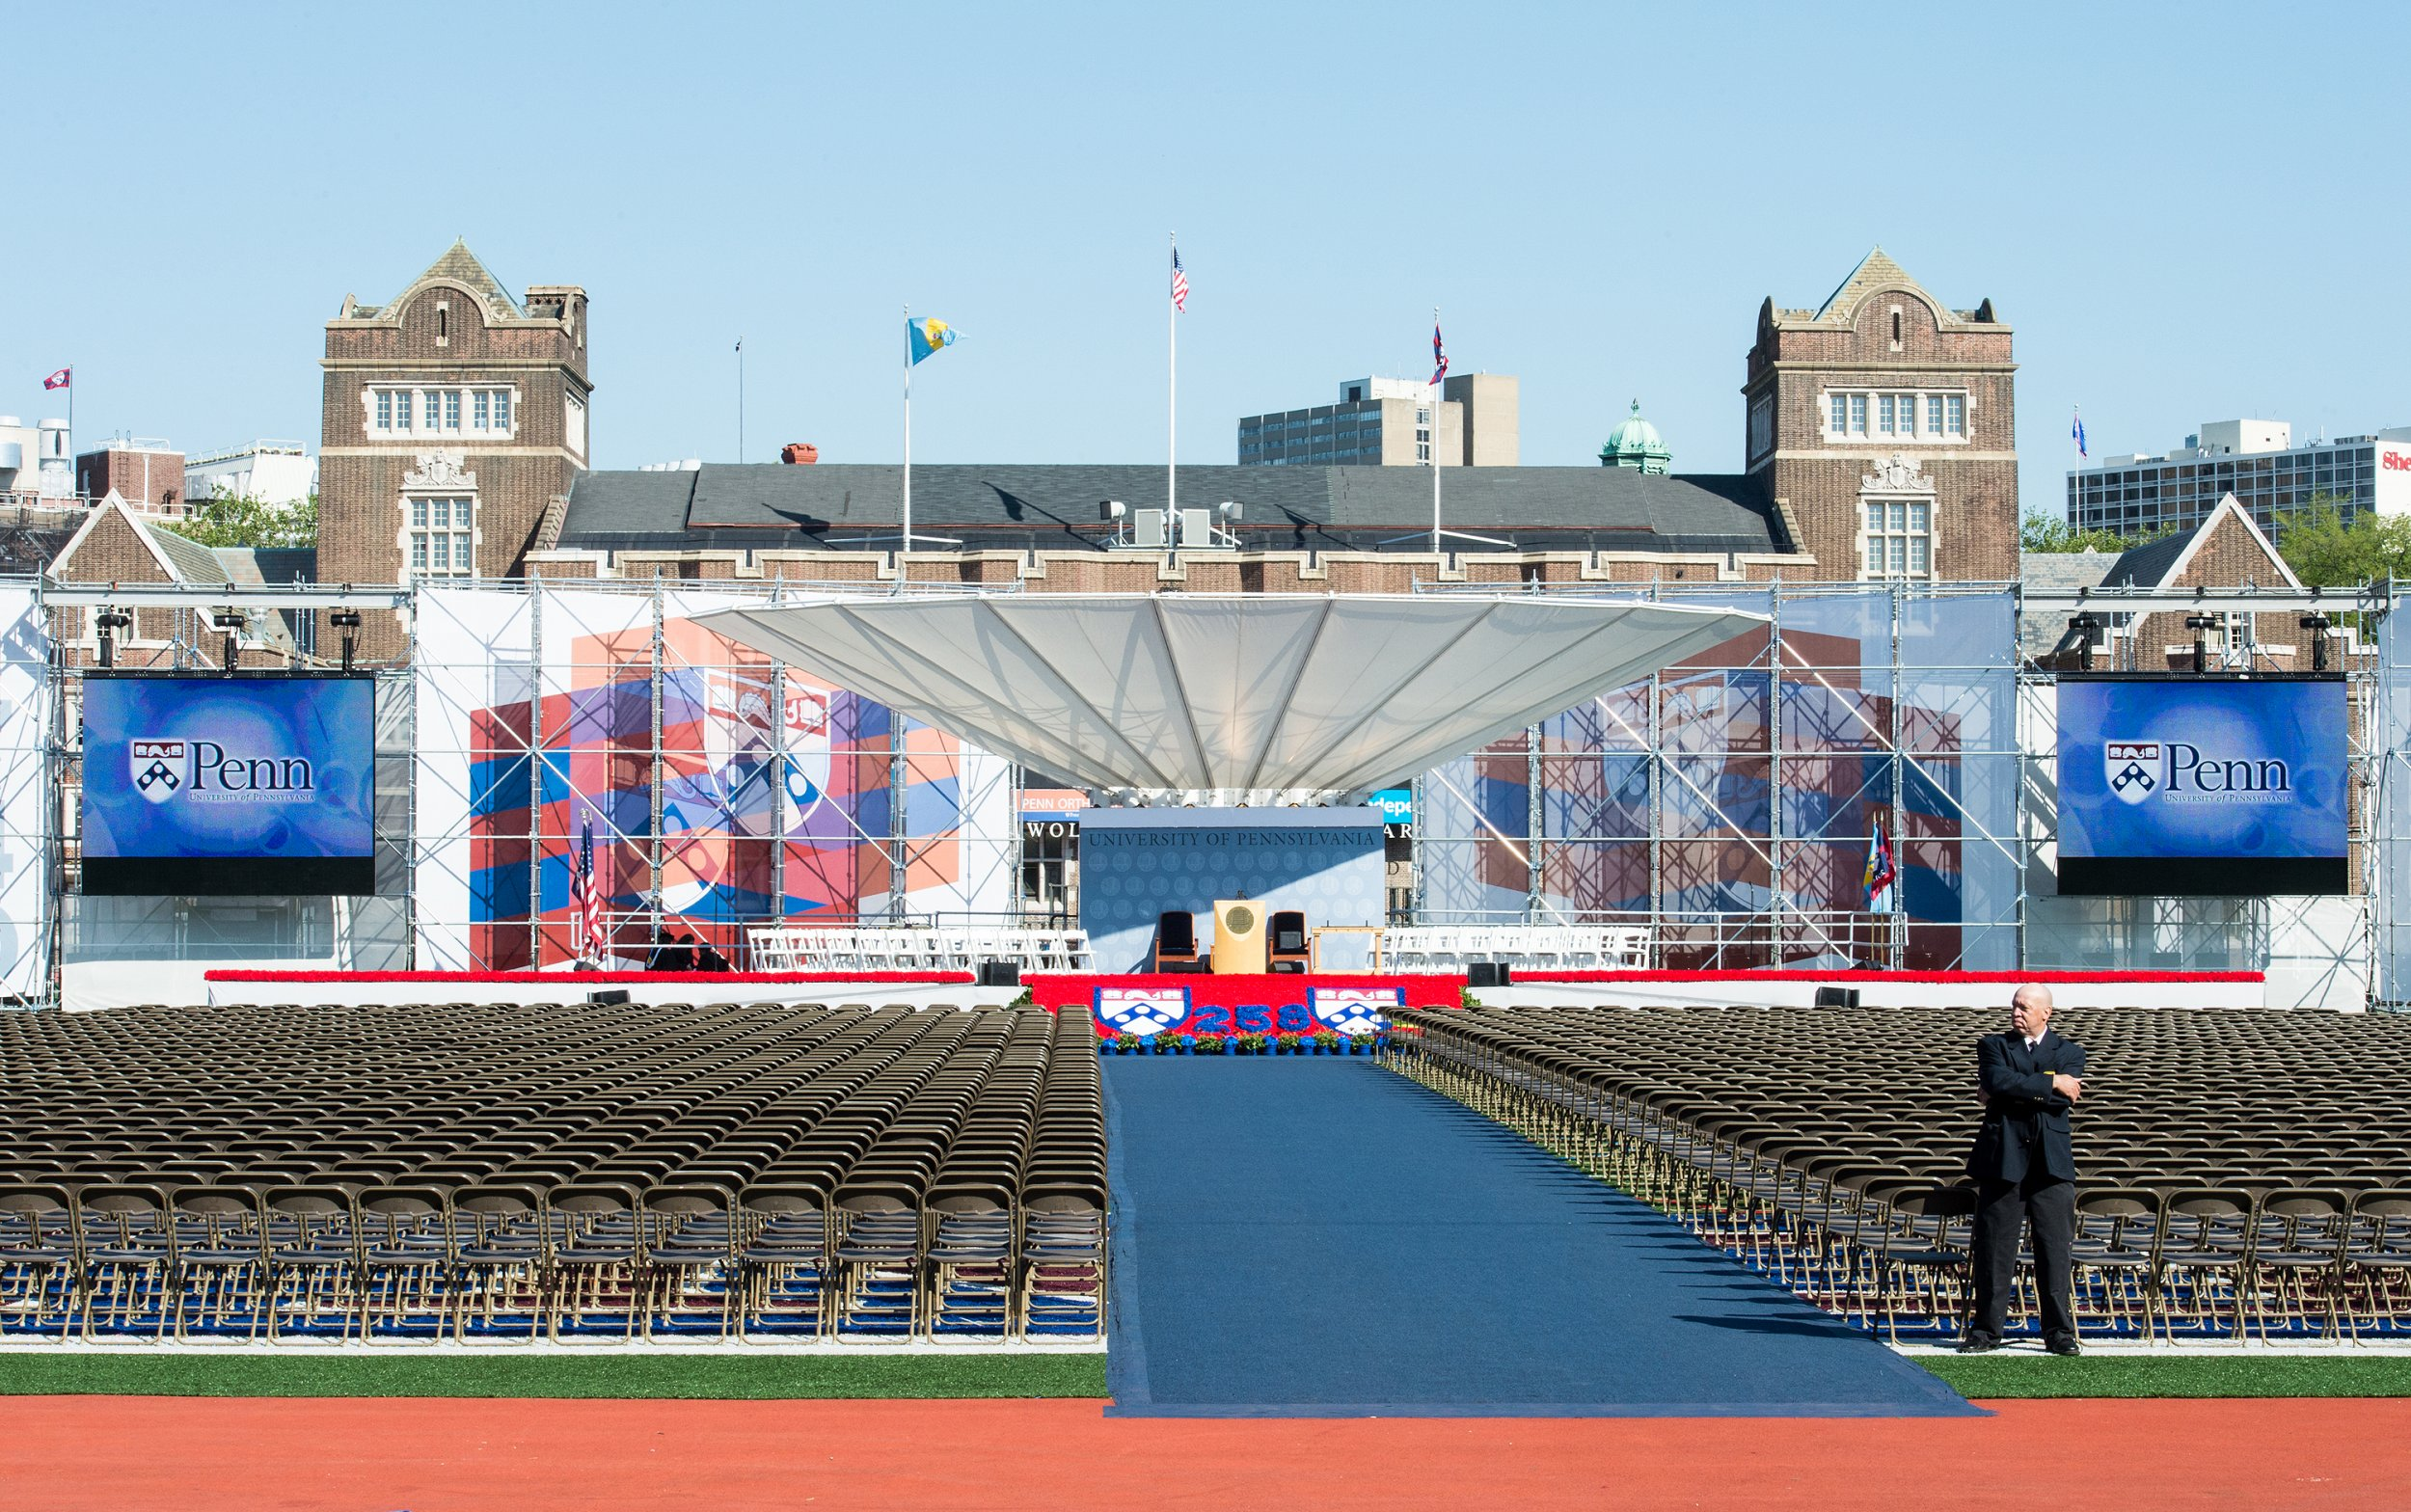 A man waits before the University of Pennsylvania's 258th Commencement ceremony on May 19, 2014 in Philadelphia, Pennsylvania. With the success of digital learning companies like Udacity, which offers